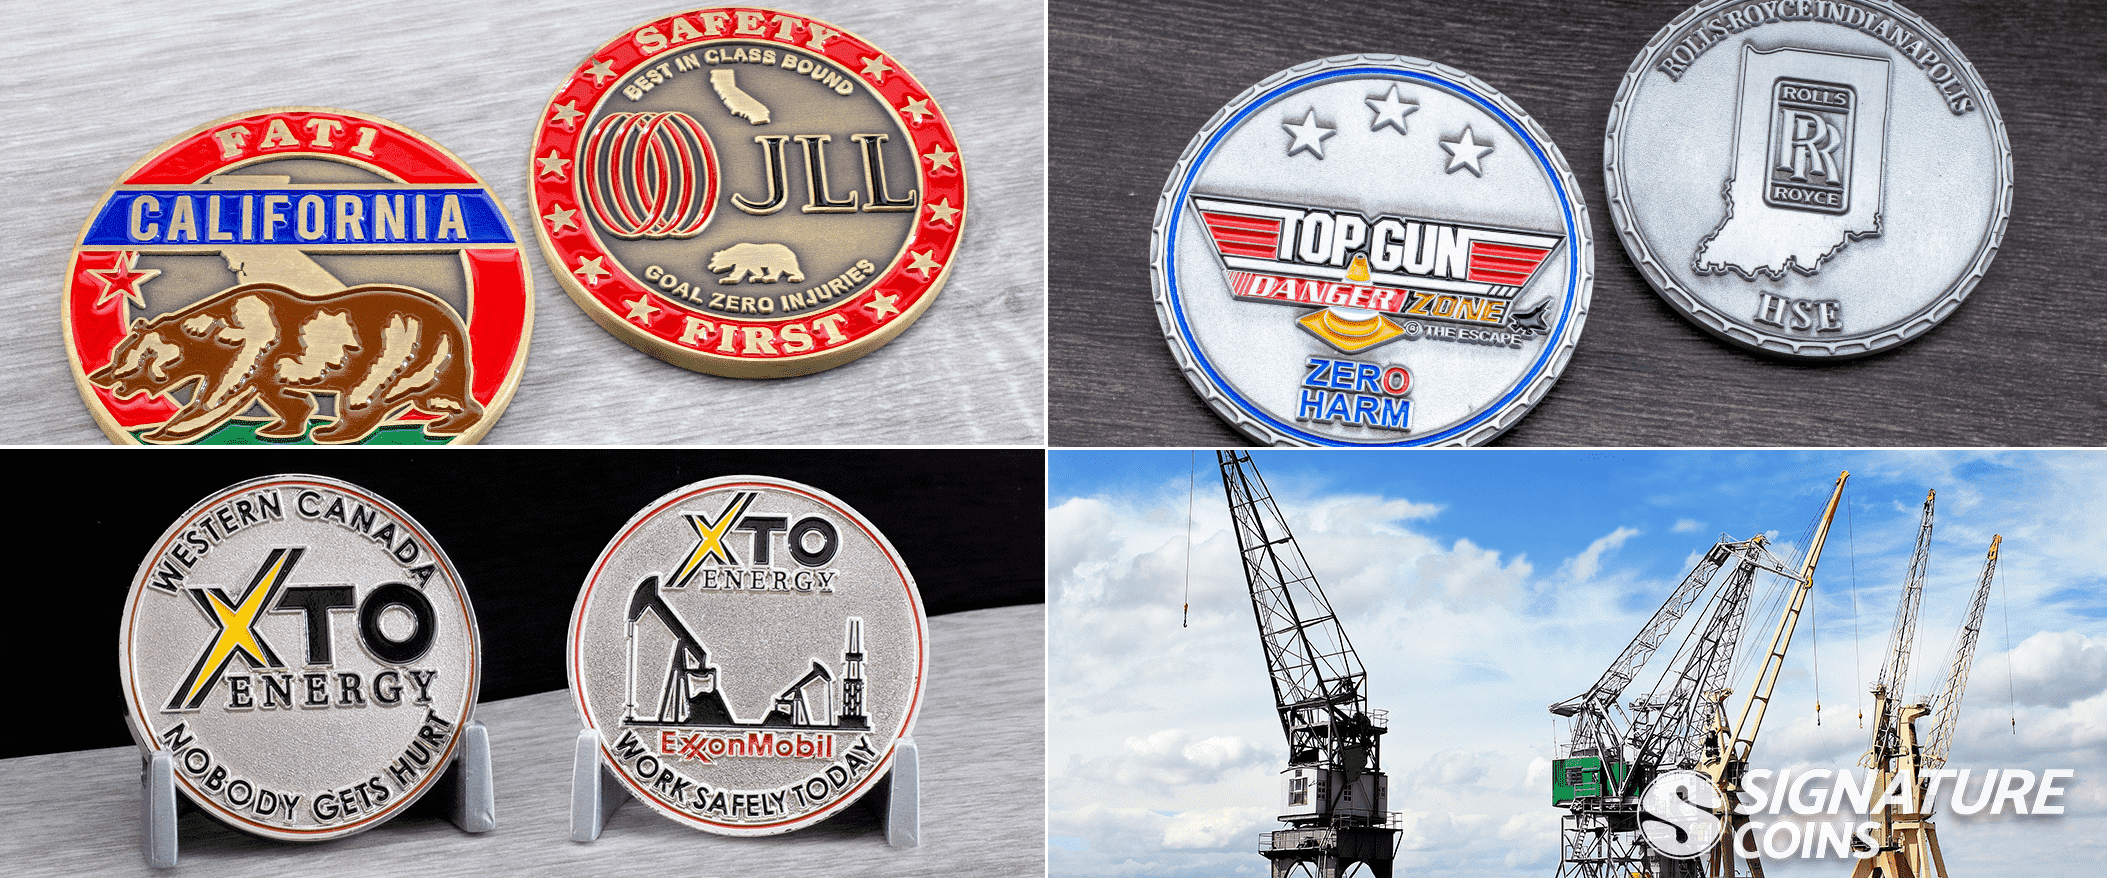 Safety Coins - Rolls Royce - Exxon Mobil - Fati challenge coims by signature coins